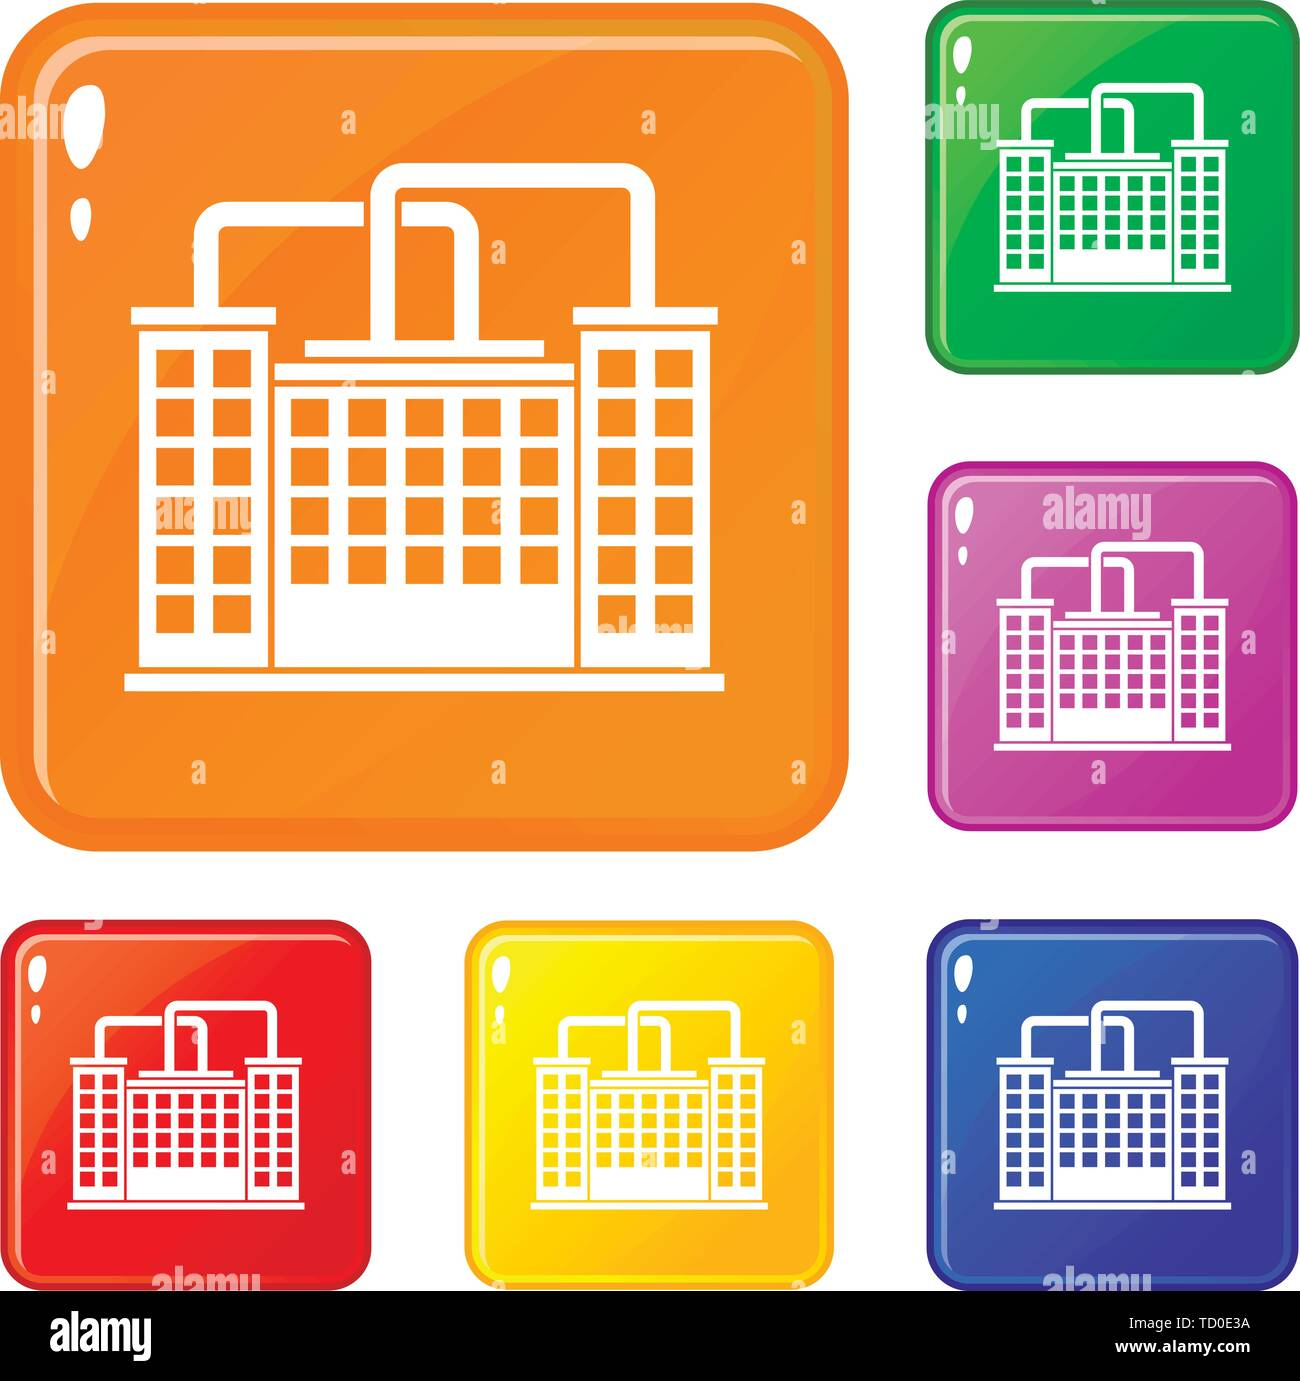 Plant building icons set vector color - Stock Image